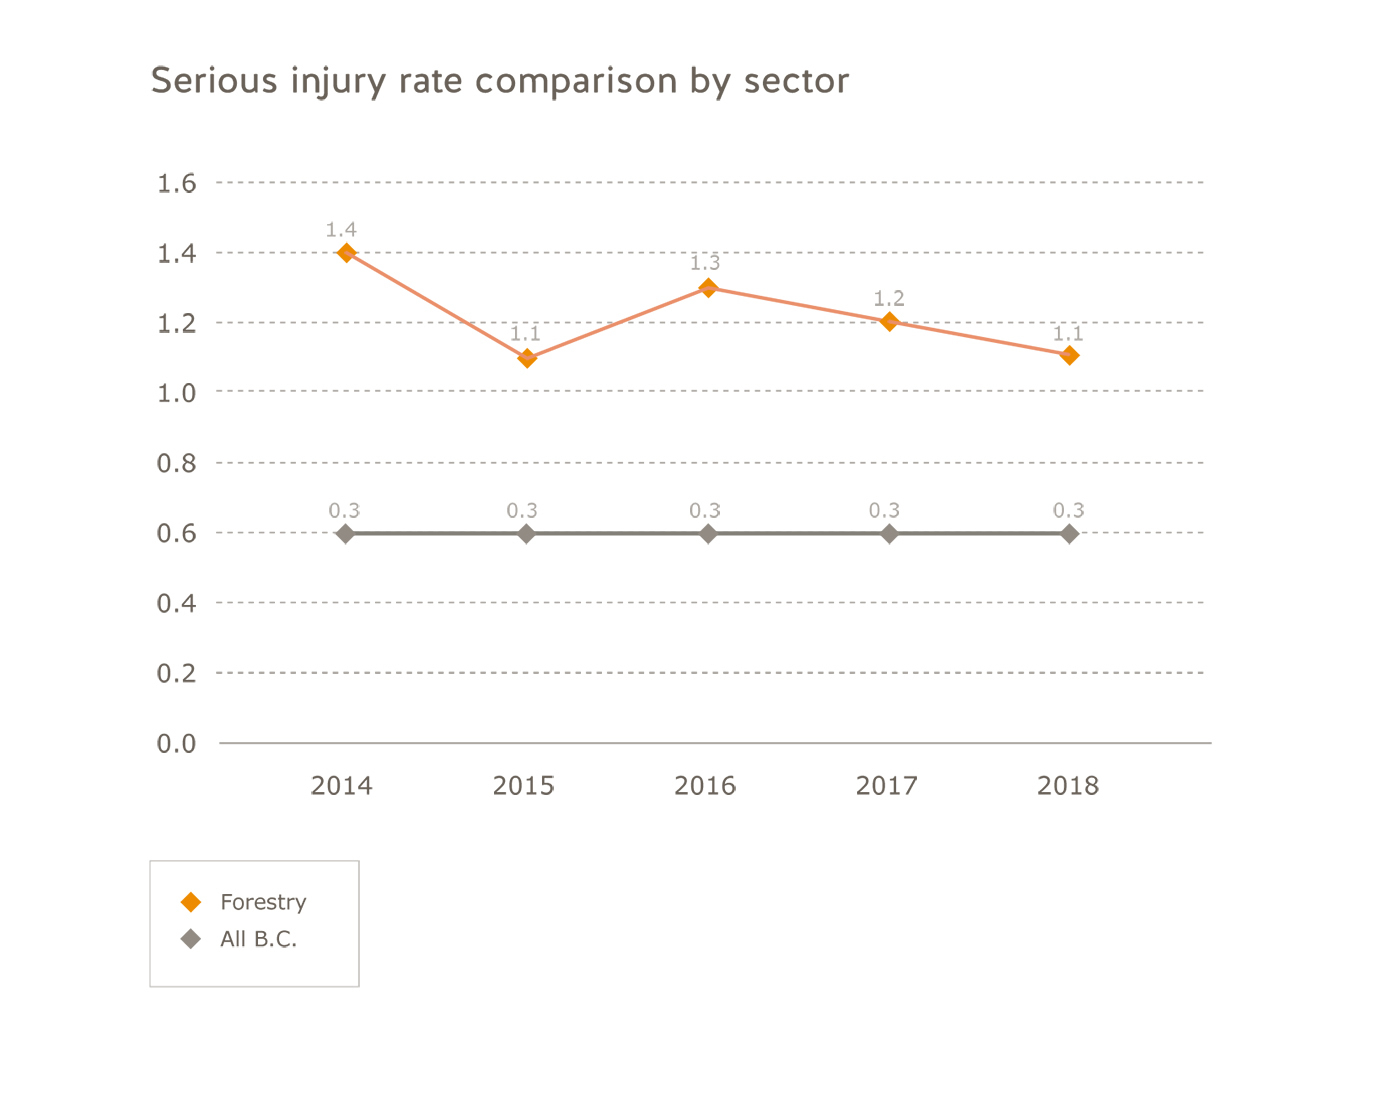 Forestry sector serious injury rate comparison by sector for 2014 to 2018. All B.C.: 2014=0.3; 2015=0.3; 2016=0.3; 2017=0.3; 2018=0.3. Forestry: 2014=1.4; 2015=1.1; 2016=1.3; 2017=1.2; 2018=1.1